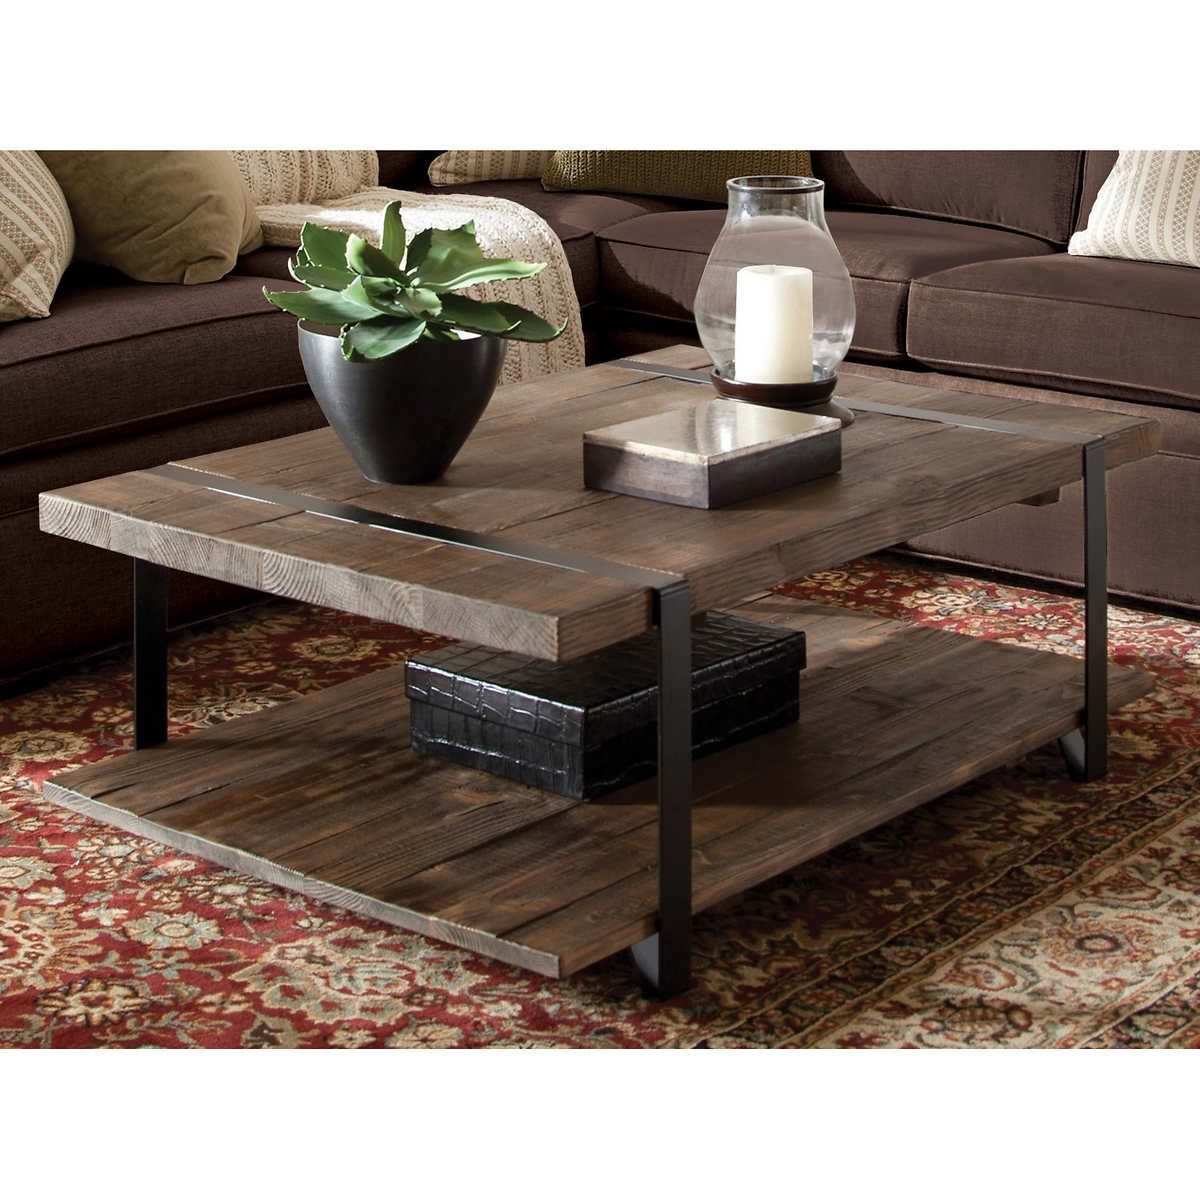 Modesto 48 Reclaimed Wood Coffee Table In 2021 Coffee Table Chic Coffee Table Coffee Table Wood